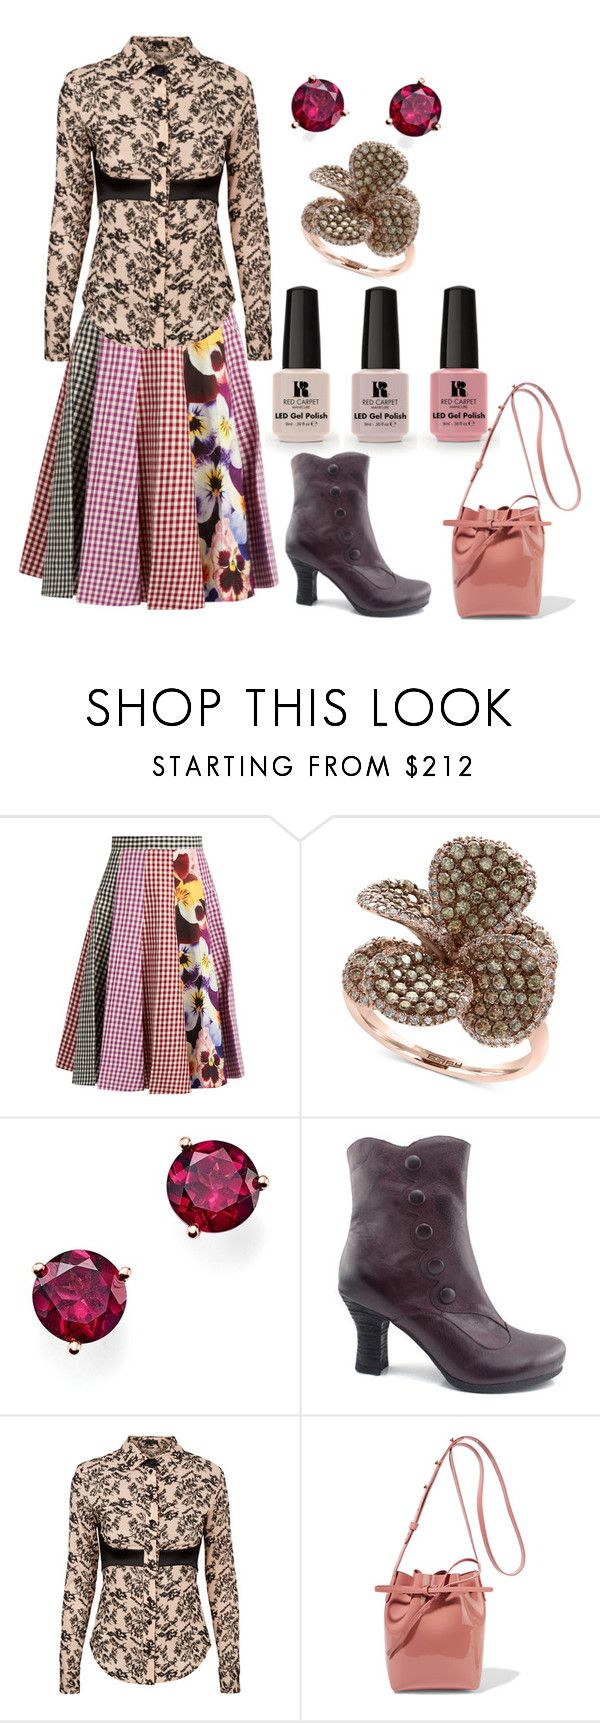 """""""Untitled #6506"""" by pampire ❤ liked on Polyvore featuring Victoria's Secret, Christopher Kane, Effy Jewelry, Bloomingdale's, Miz Mooz, La Perla and Mansur Gavriel"""